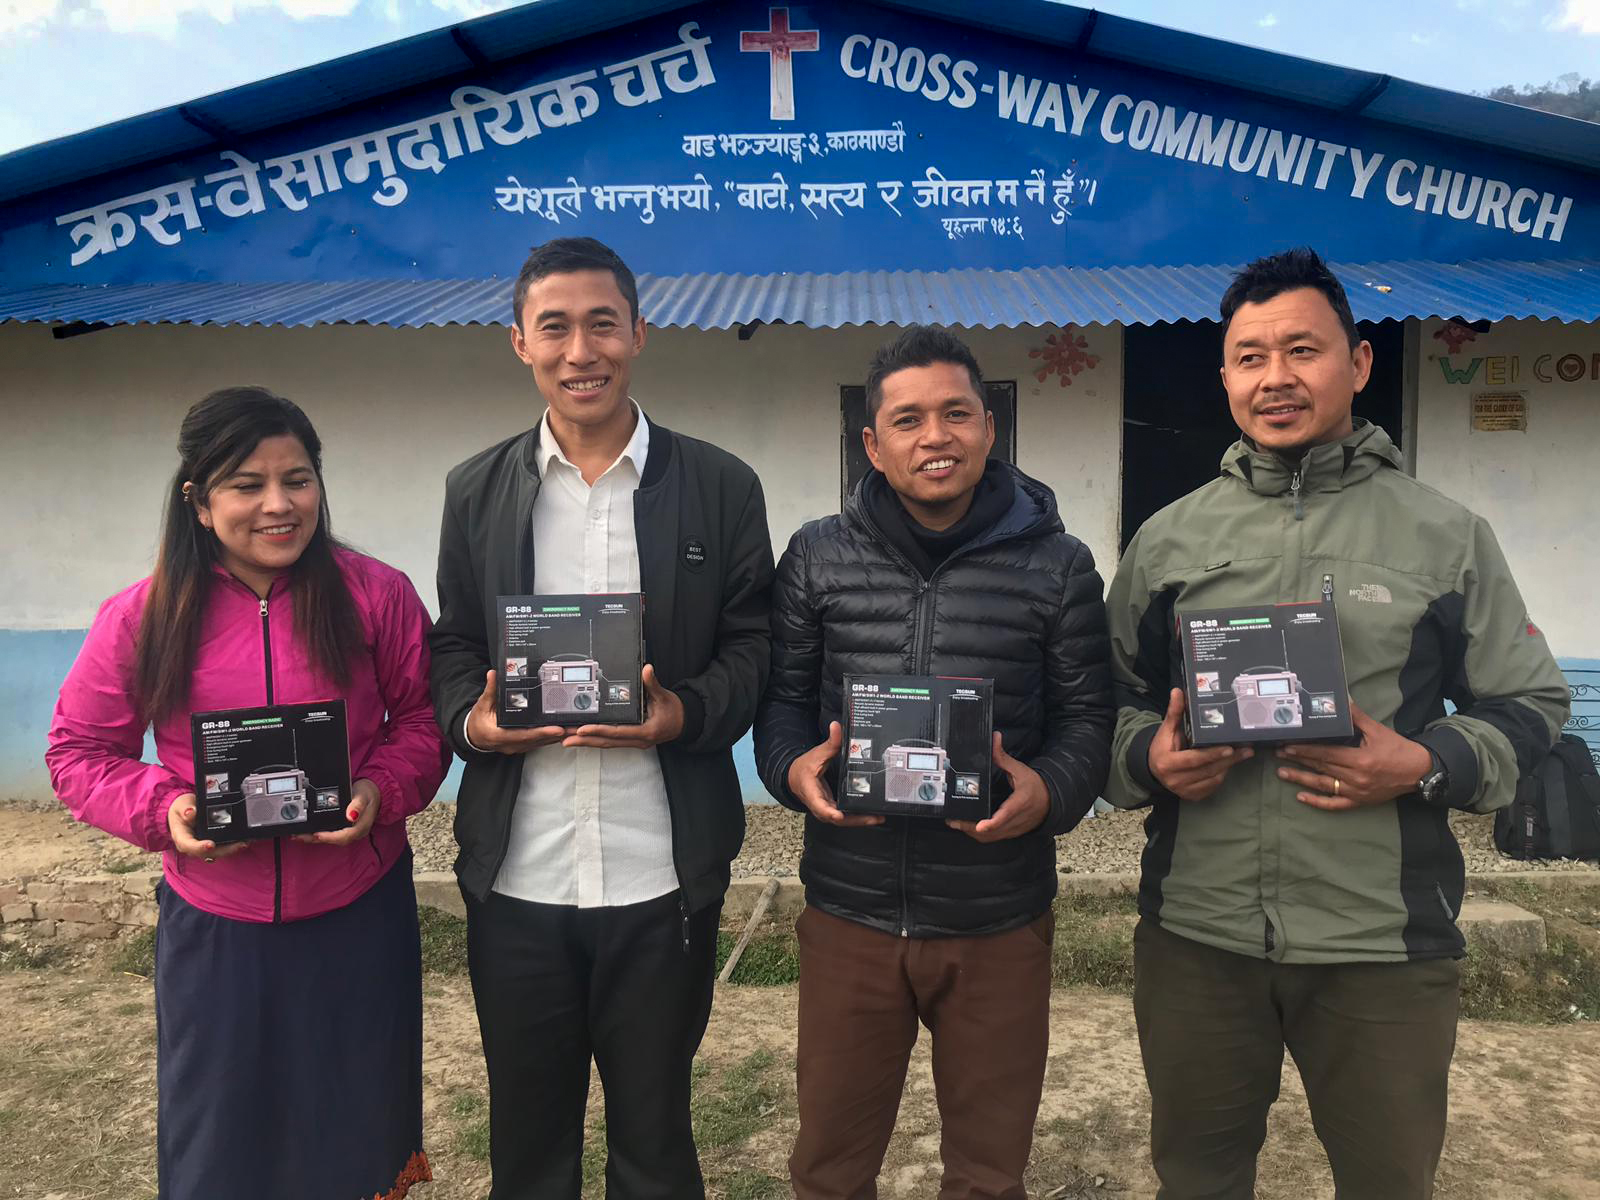 Four Nepali people standing outside church holding radios